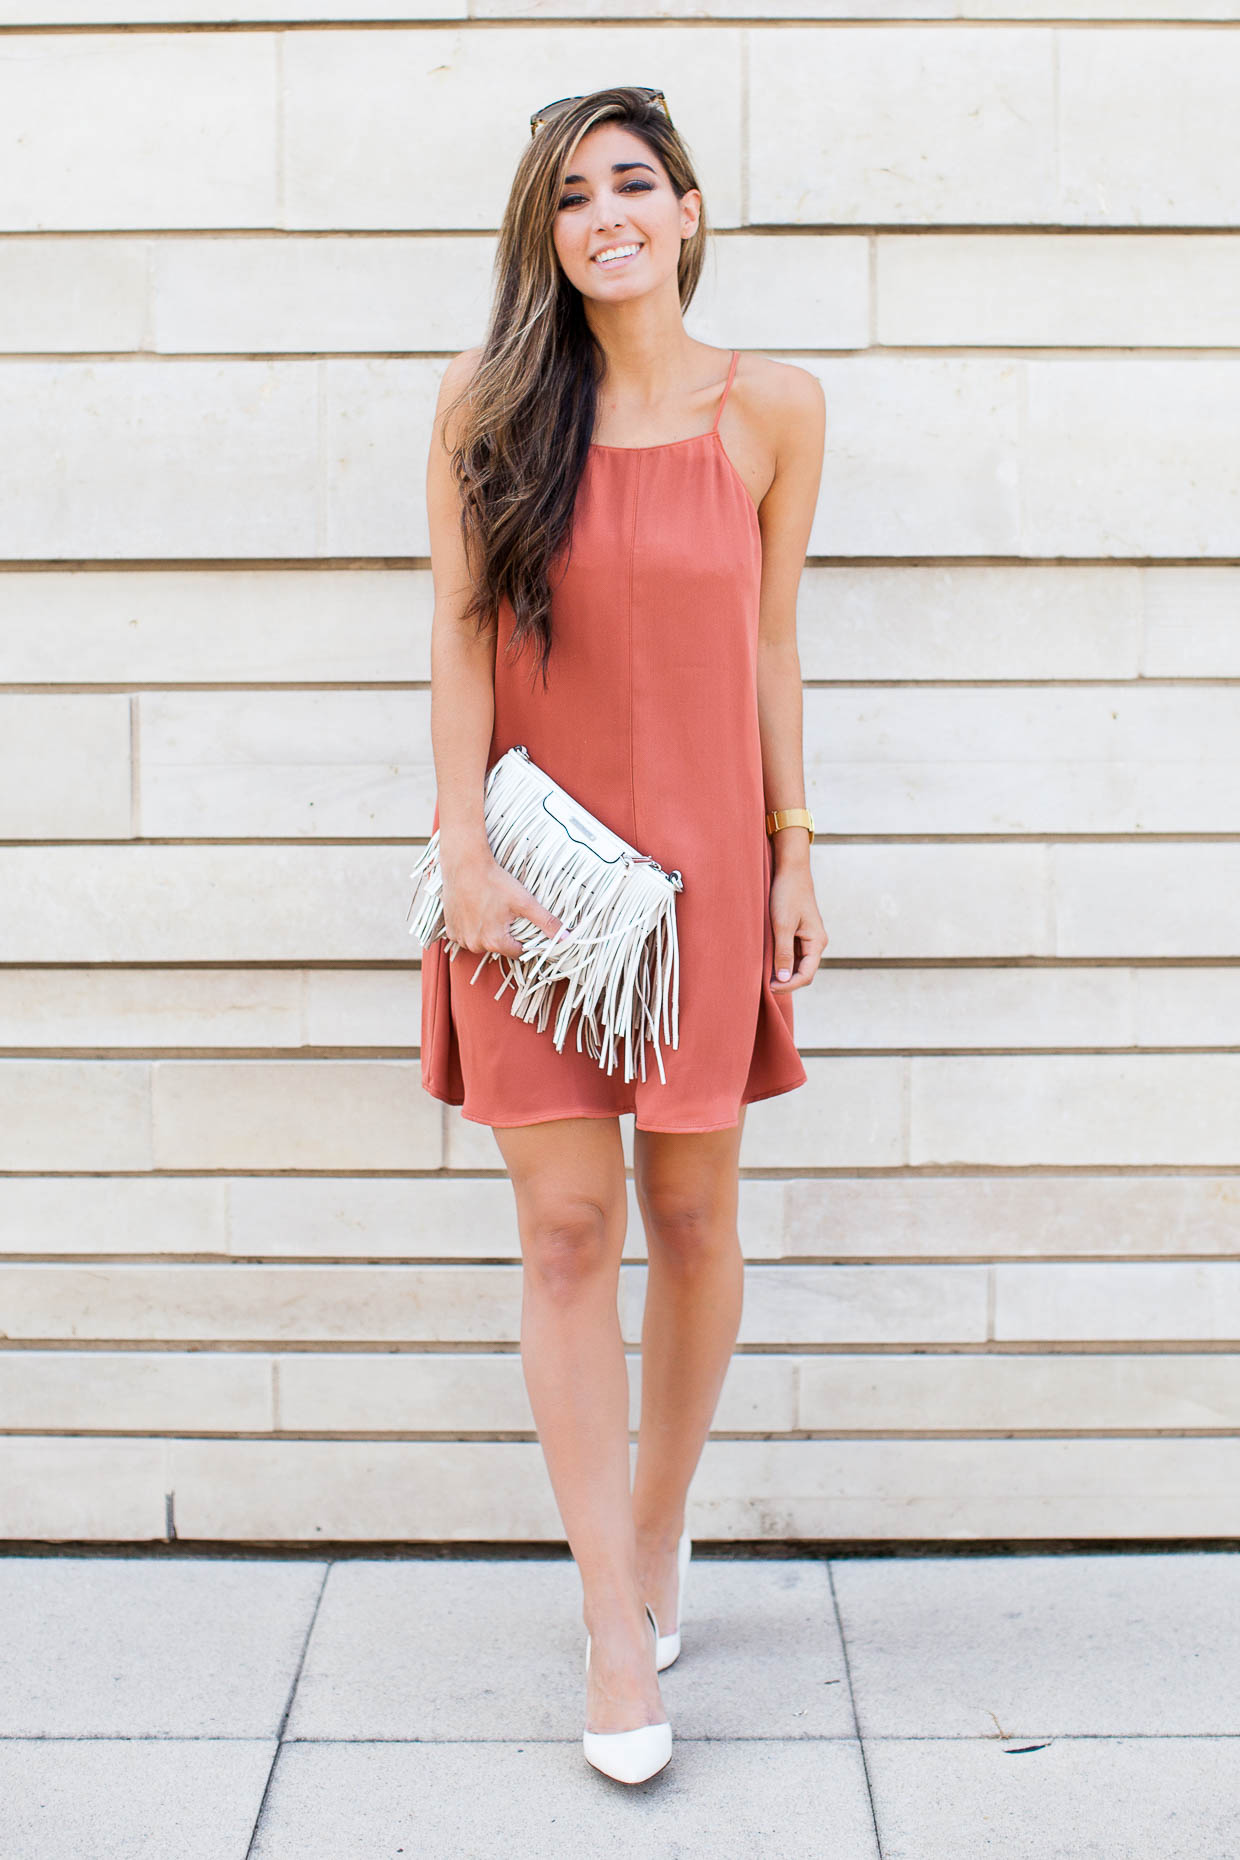 The Darling Detail wears shift dress from Nordstrom